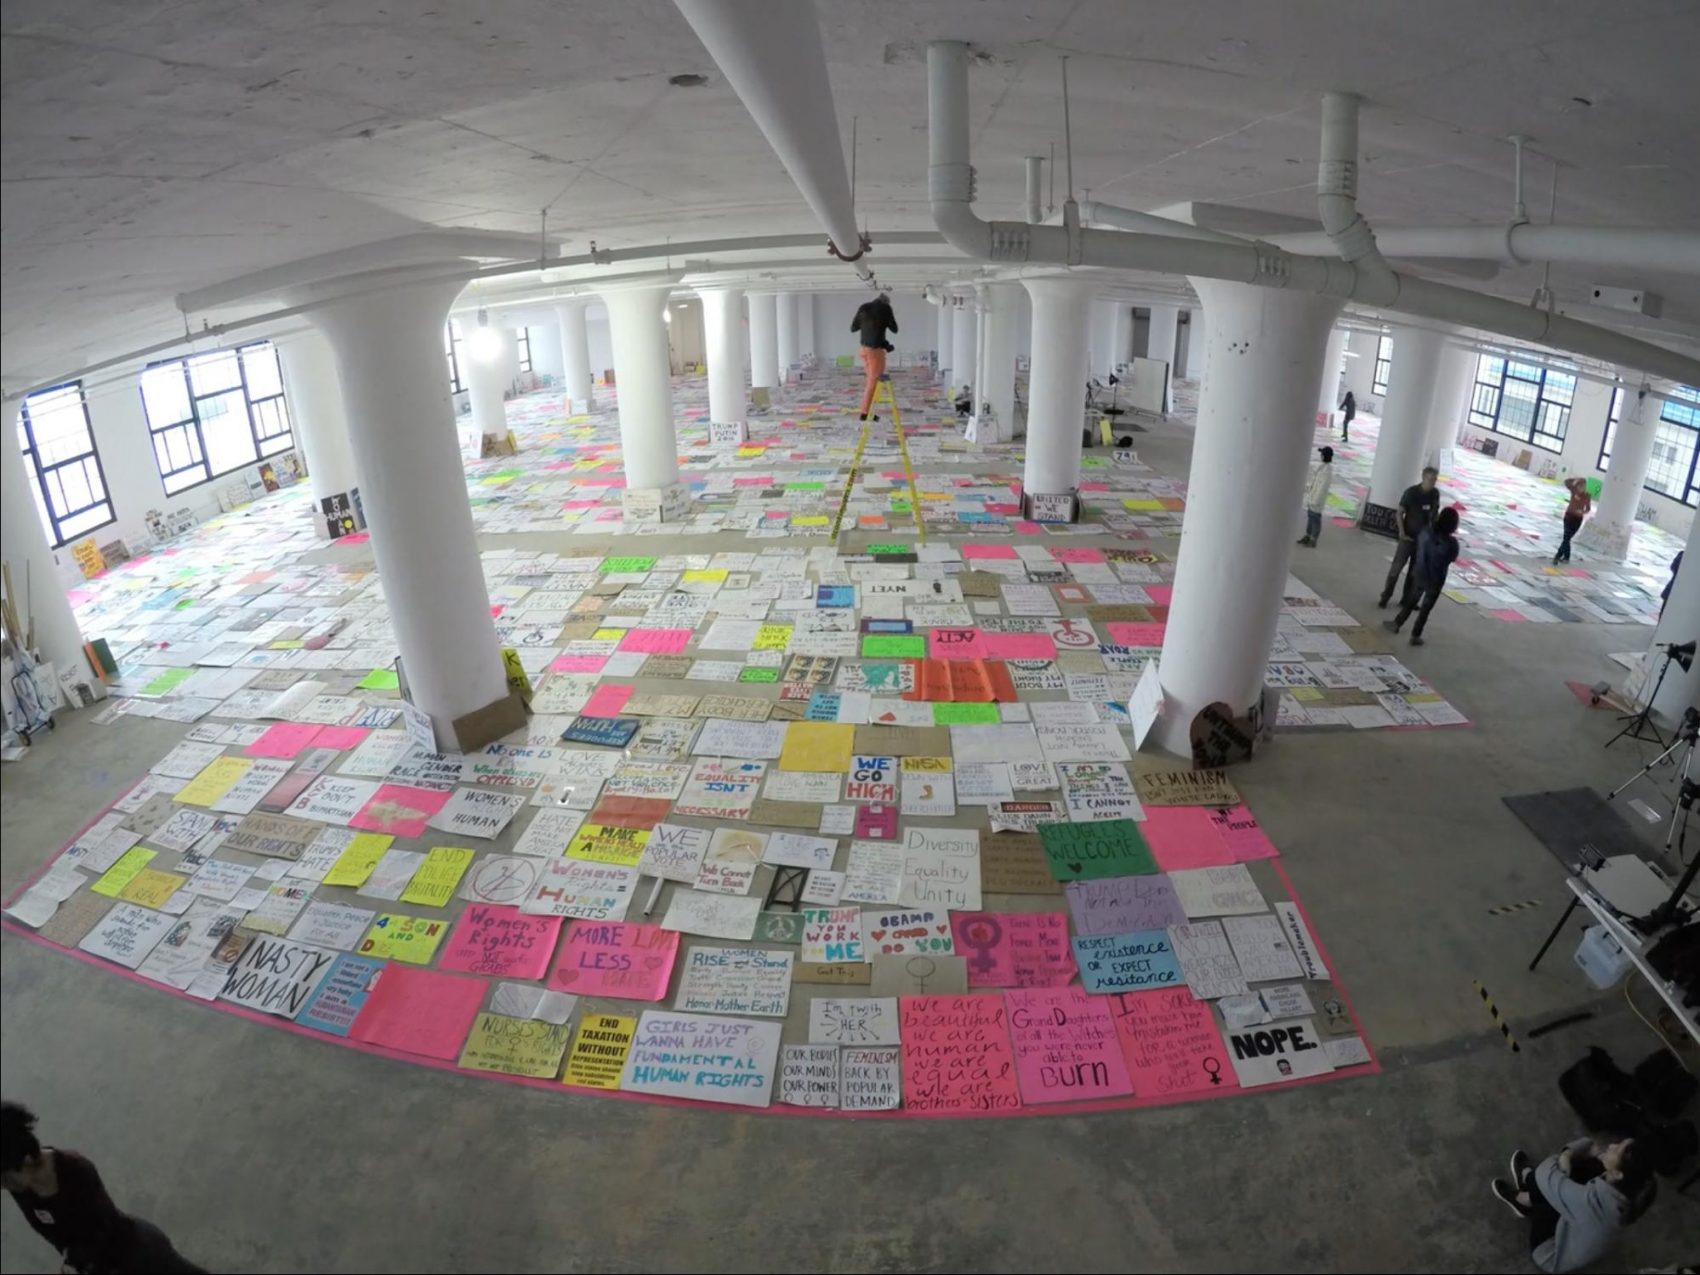 The team photographs all the posters they collected from the Women's March in Boston. (Courtesy Dietmar Offenhuber/Art of the March)